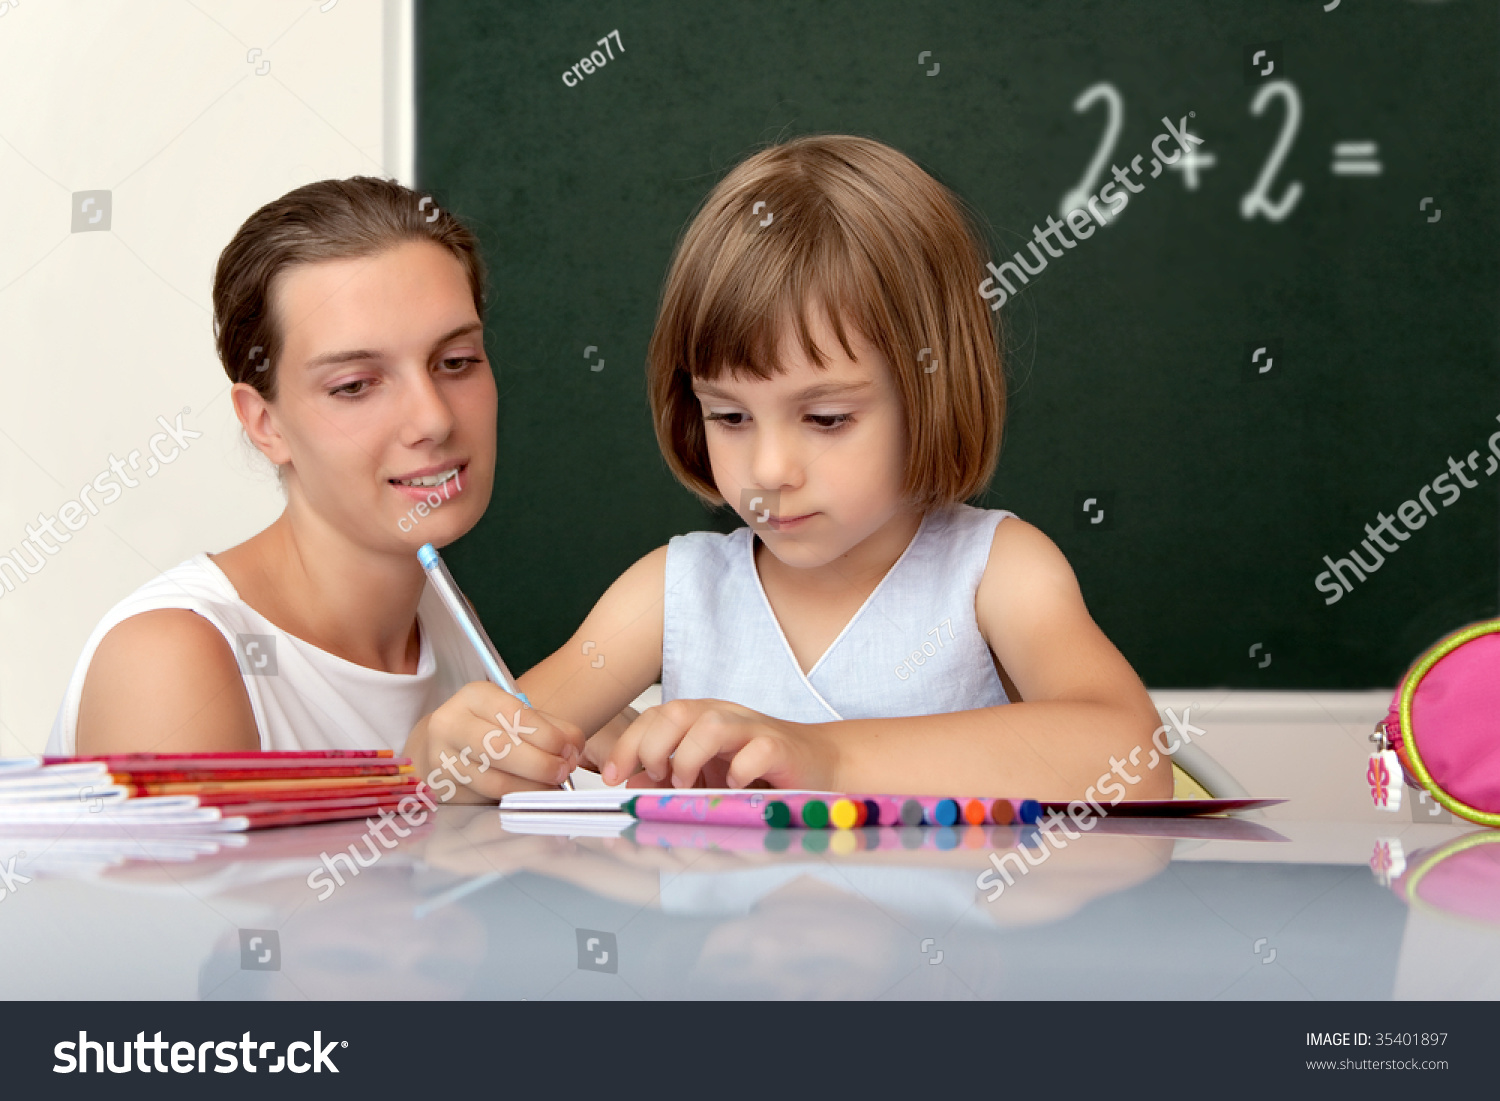 Elementary School Pupil Working Under The Supervision Of A Teacher Stock Photo 35401897 : Shutterstock